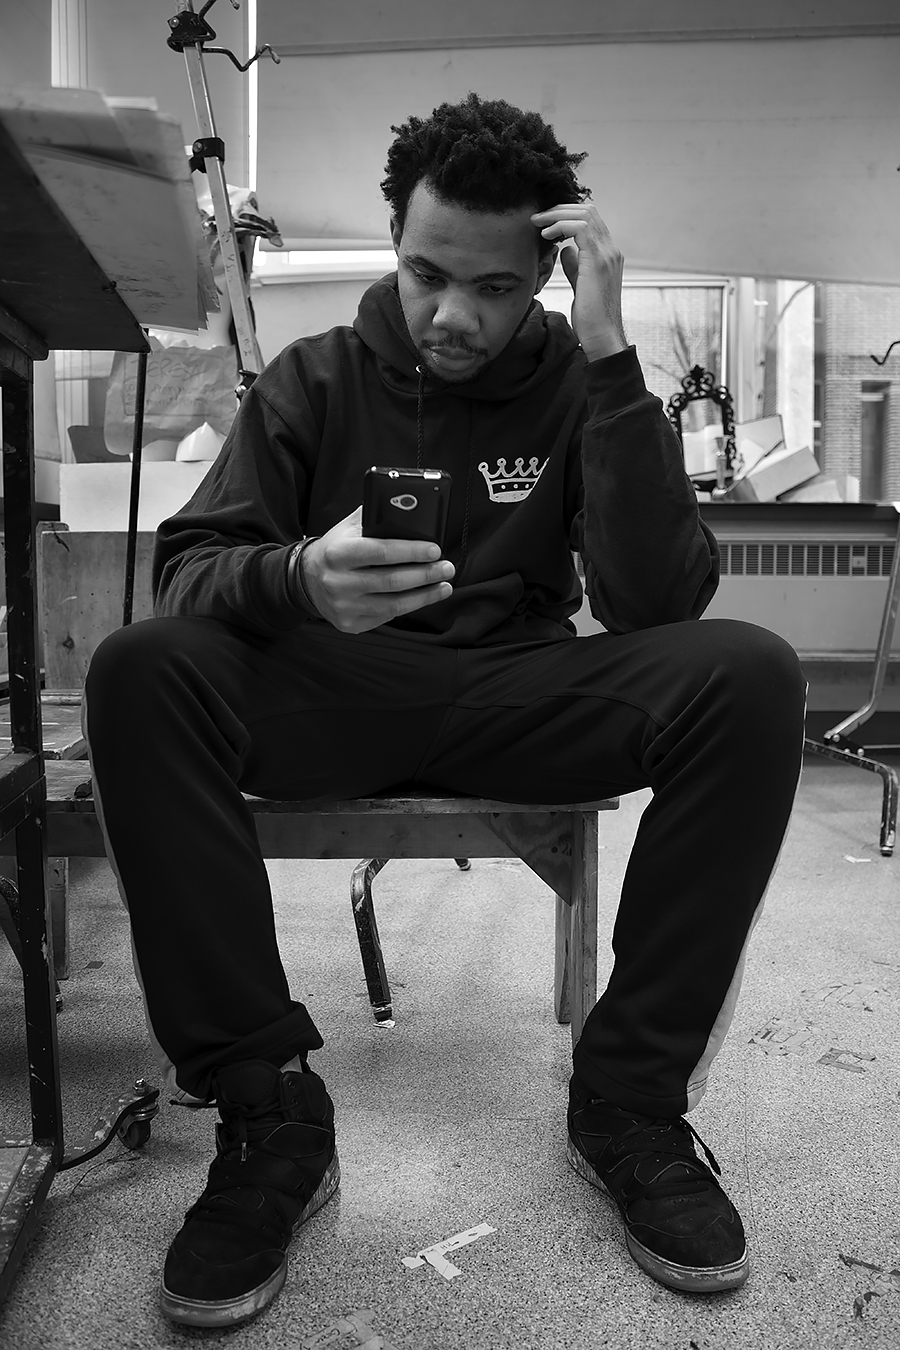 Tyler_Ling_photography_finearts_drawing_cellphone_socialmedia_texting_absorbed_student_Penn_frontshot_unaware_black_white